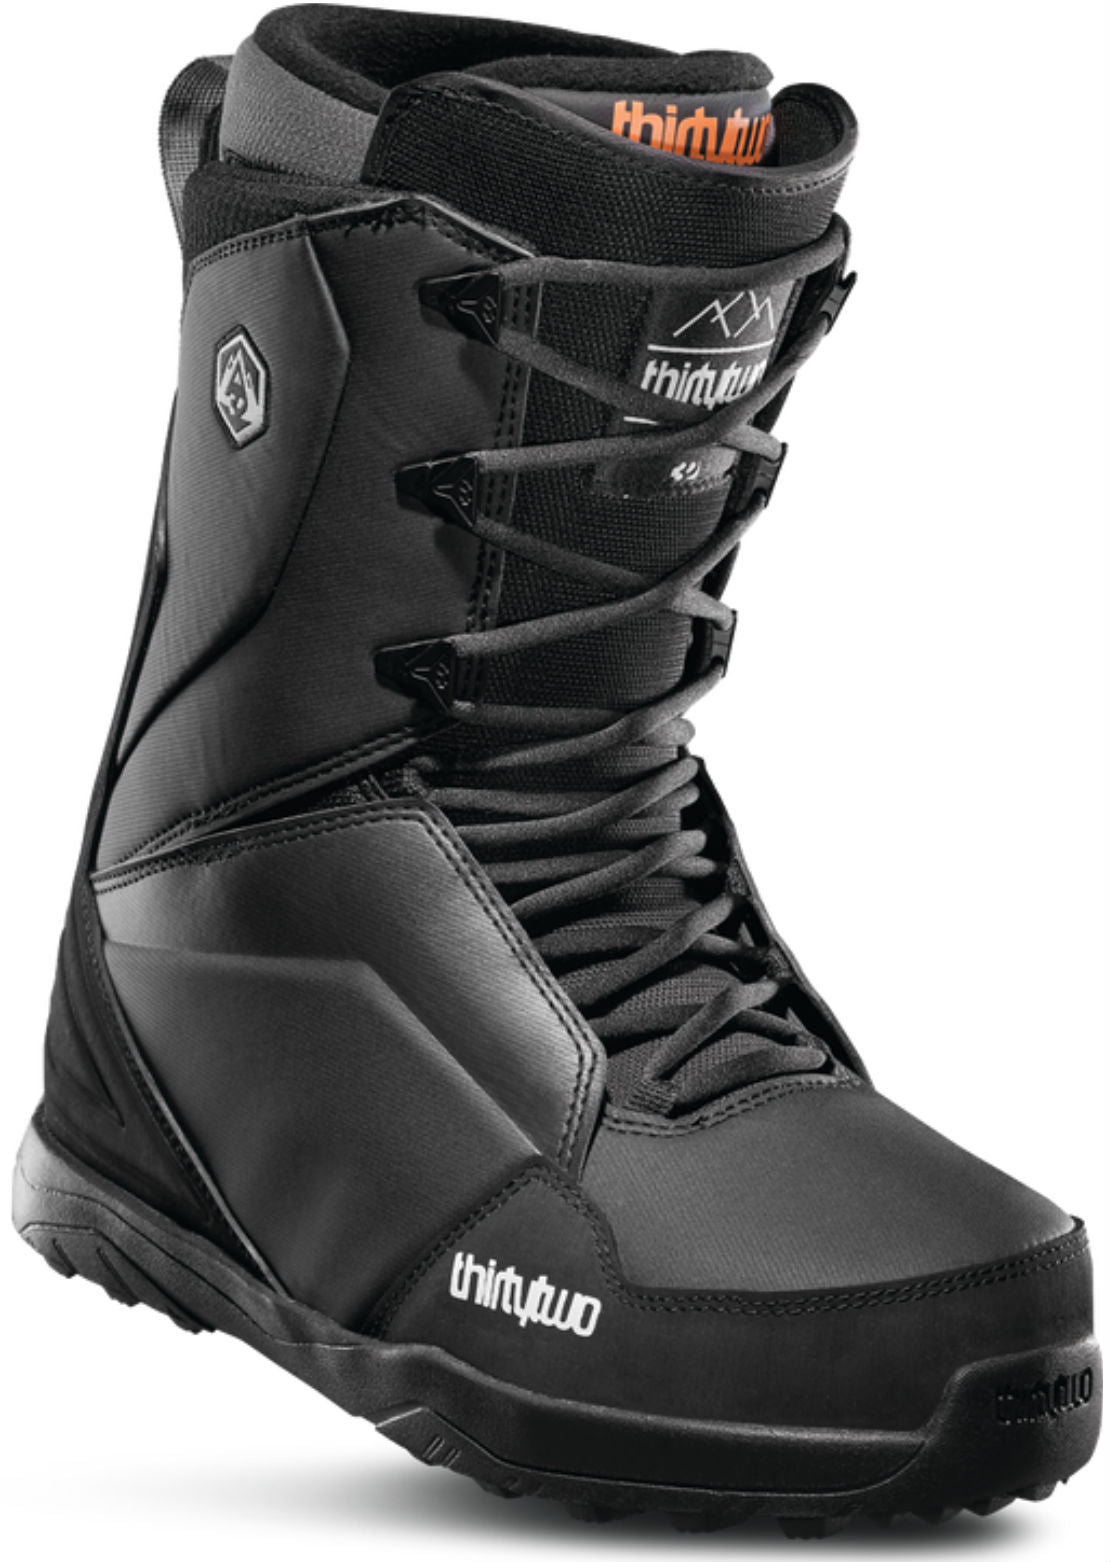 32 Men's Lashed Snowboard Boots